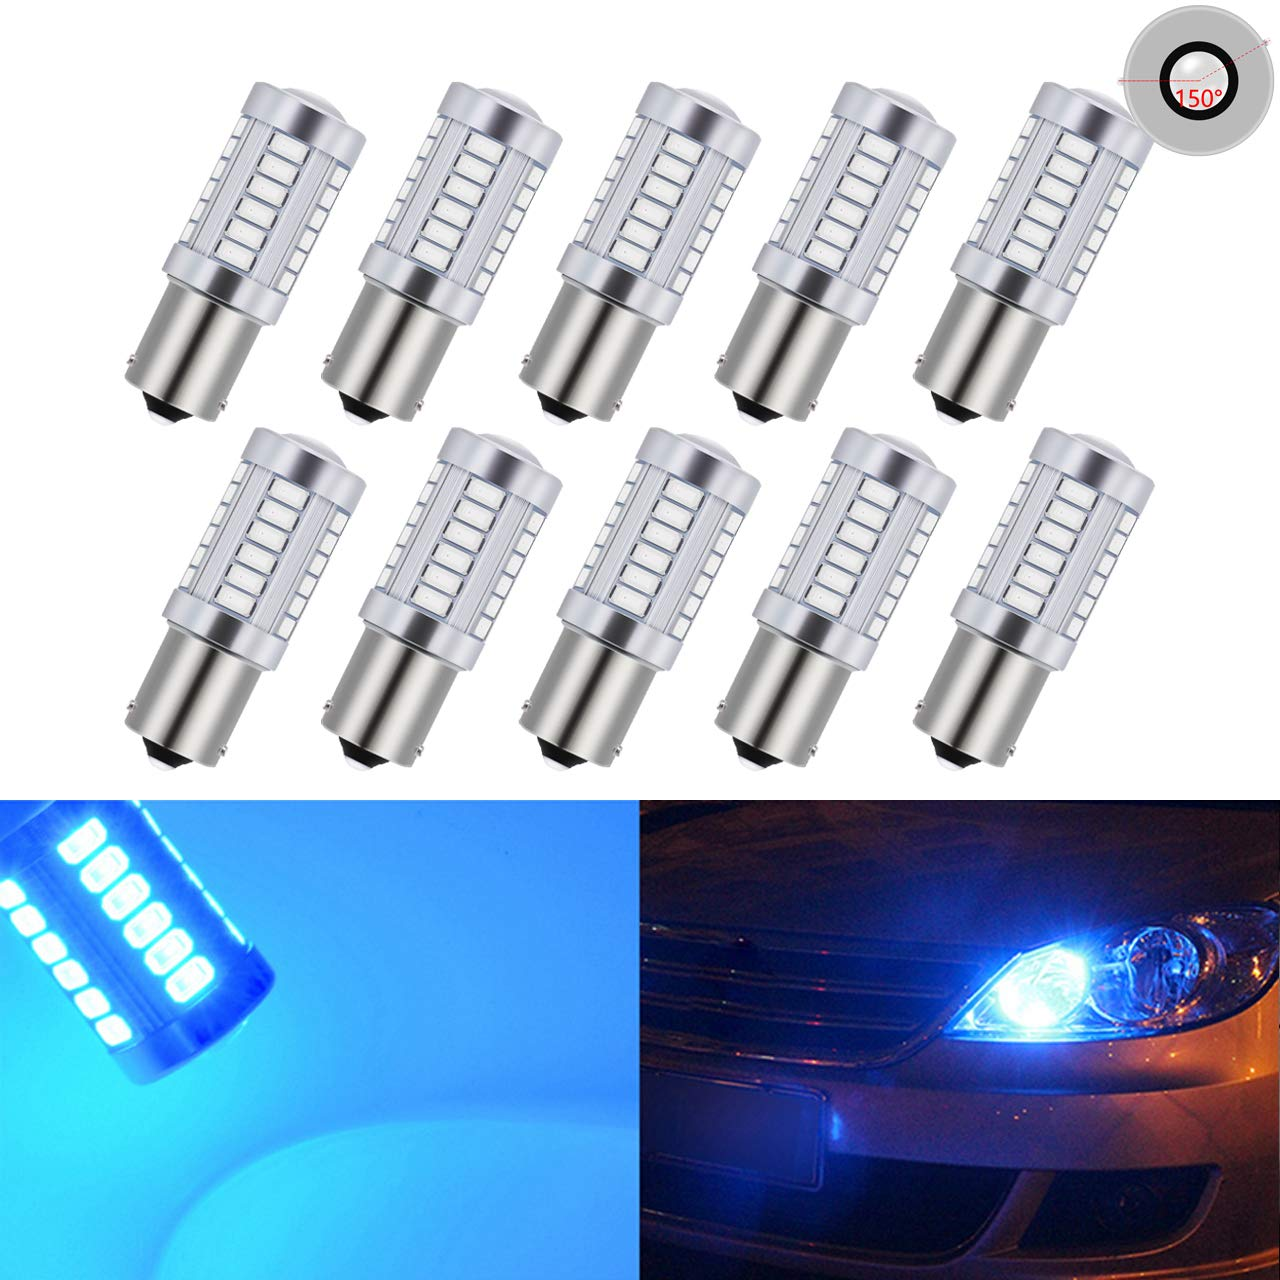 KATUR 10pcs 1156 BA15S 1141 7056 5630 33-SMD Amber 900 Lumens 8000K Super Bright LED Turn Tail Brake Stop Signal Light Lamp Bulb 12V 3.6W